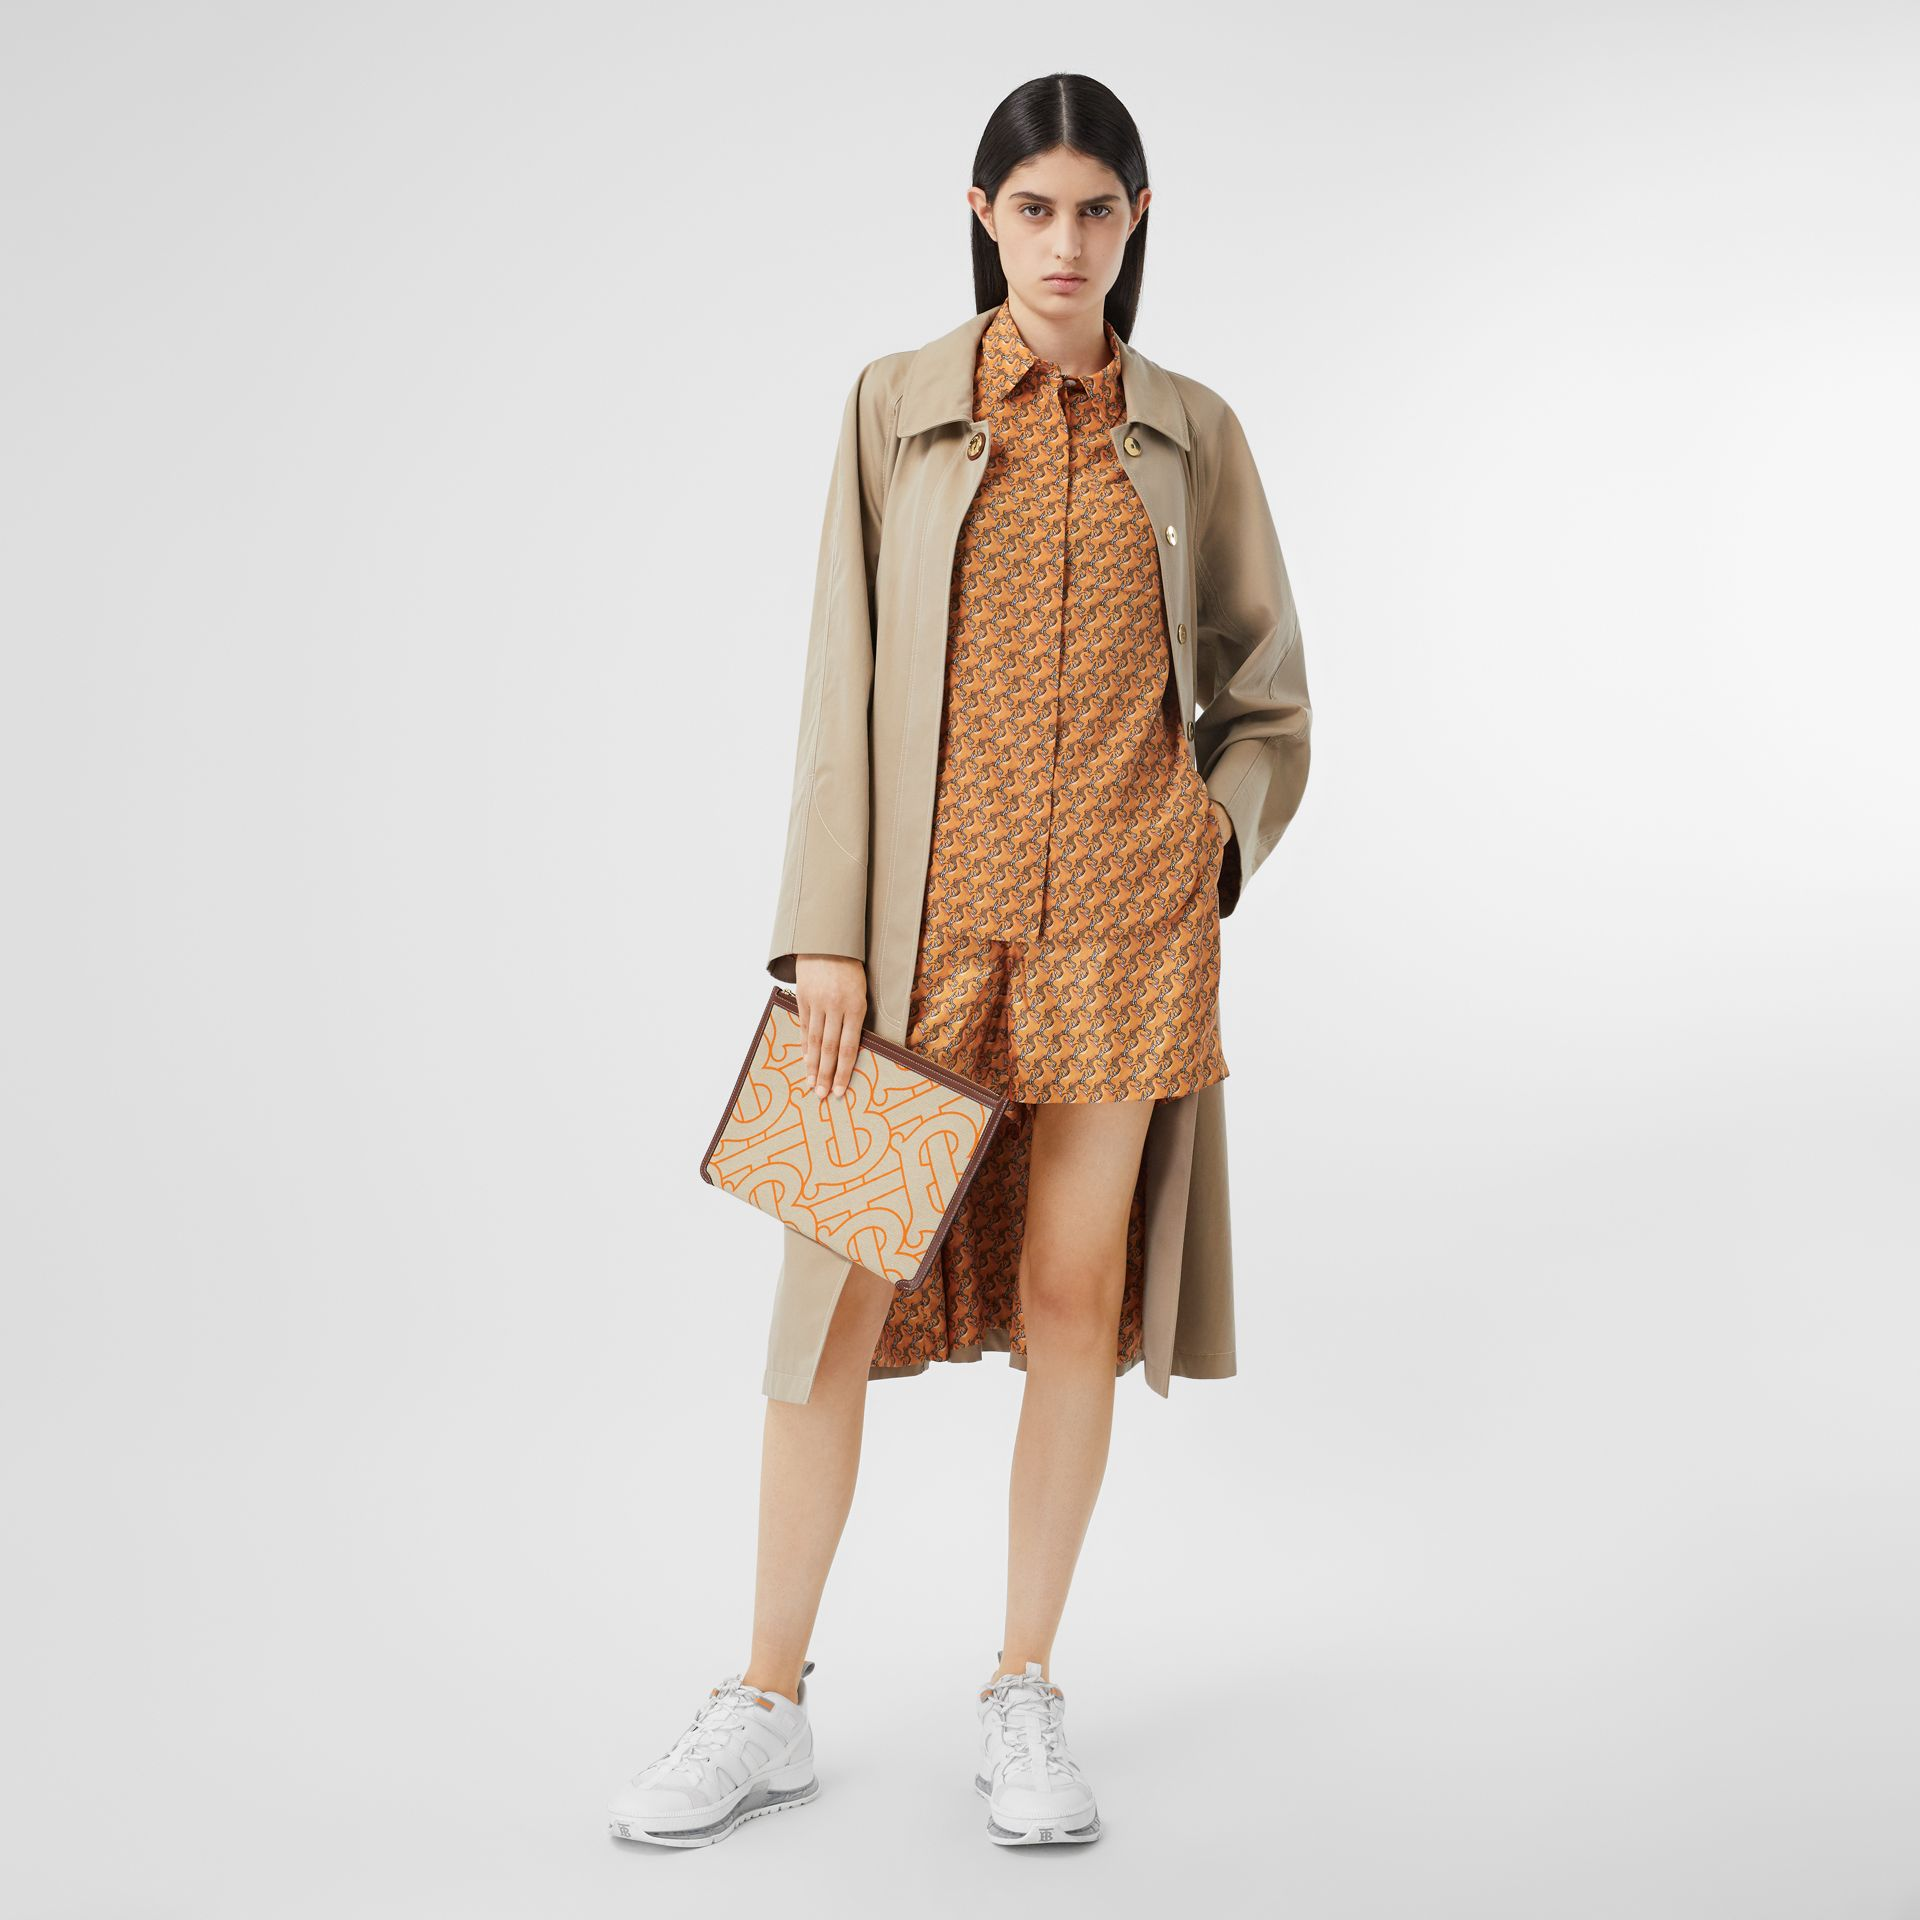 Monogram Motif Canvas and Leather Pouch in Natural/orange - Women | Burberry United States - gallery image 4